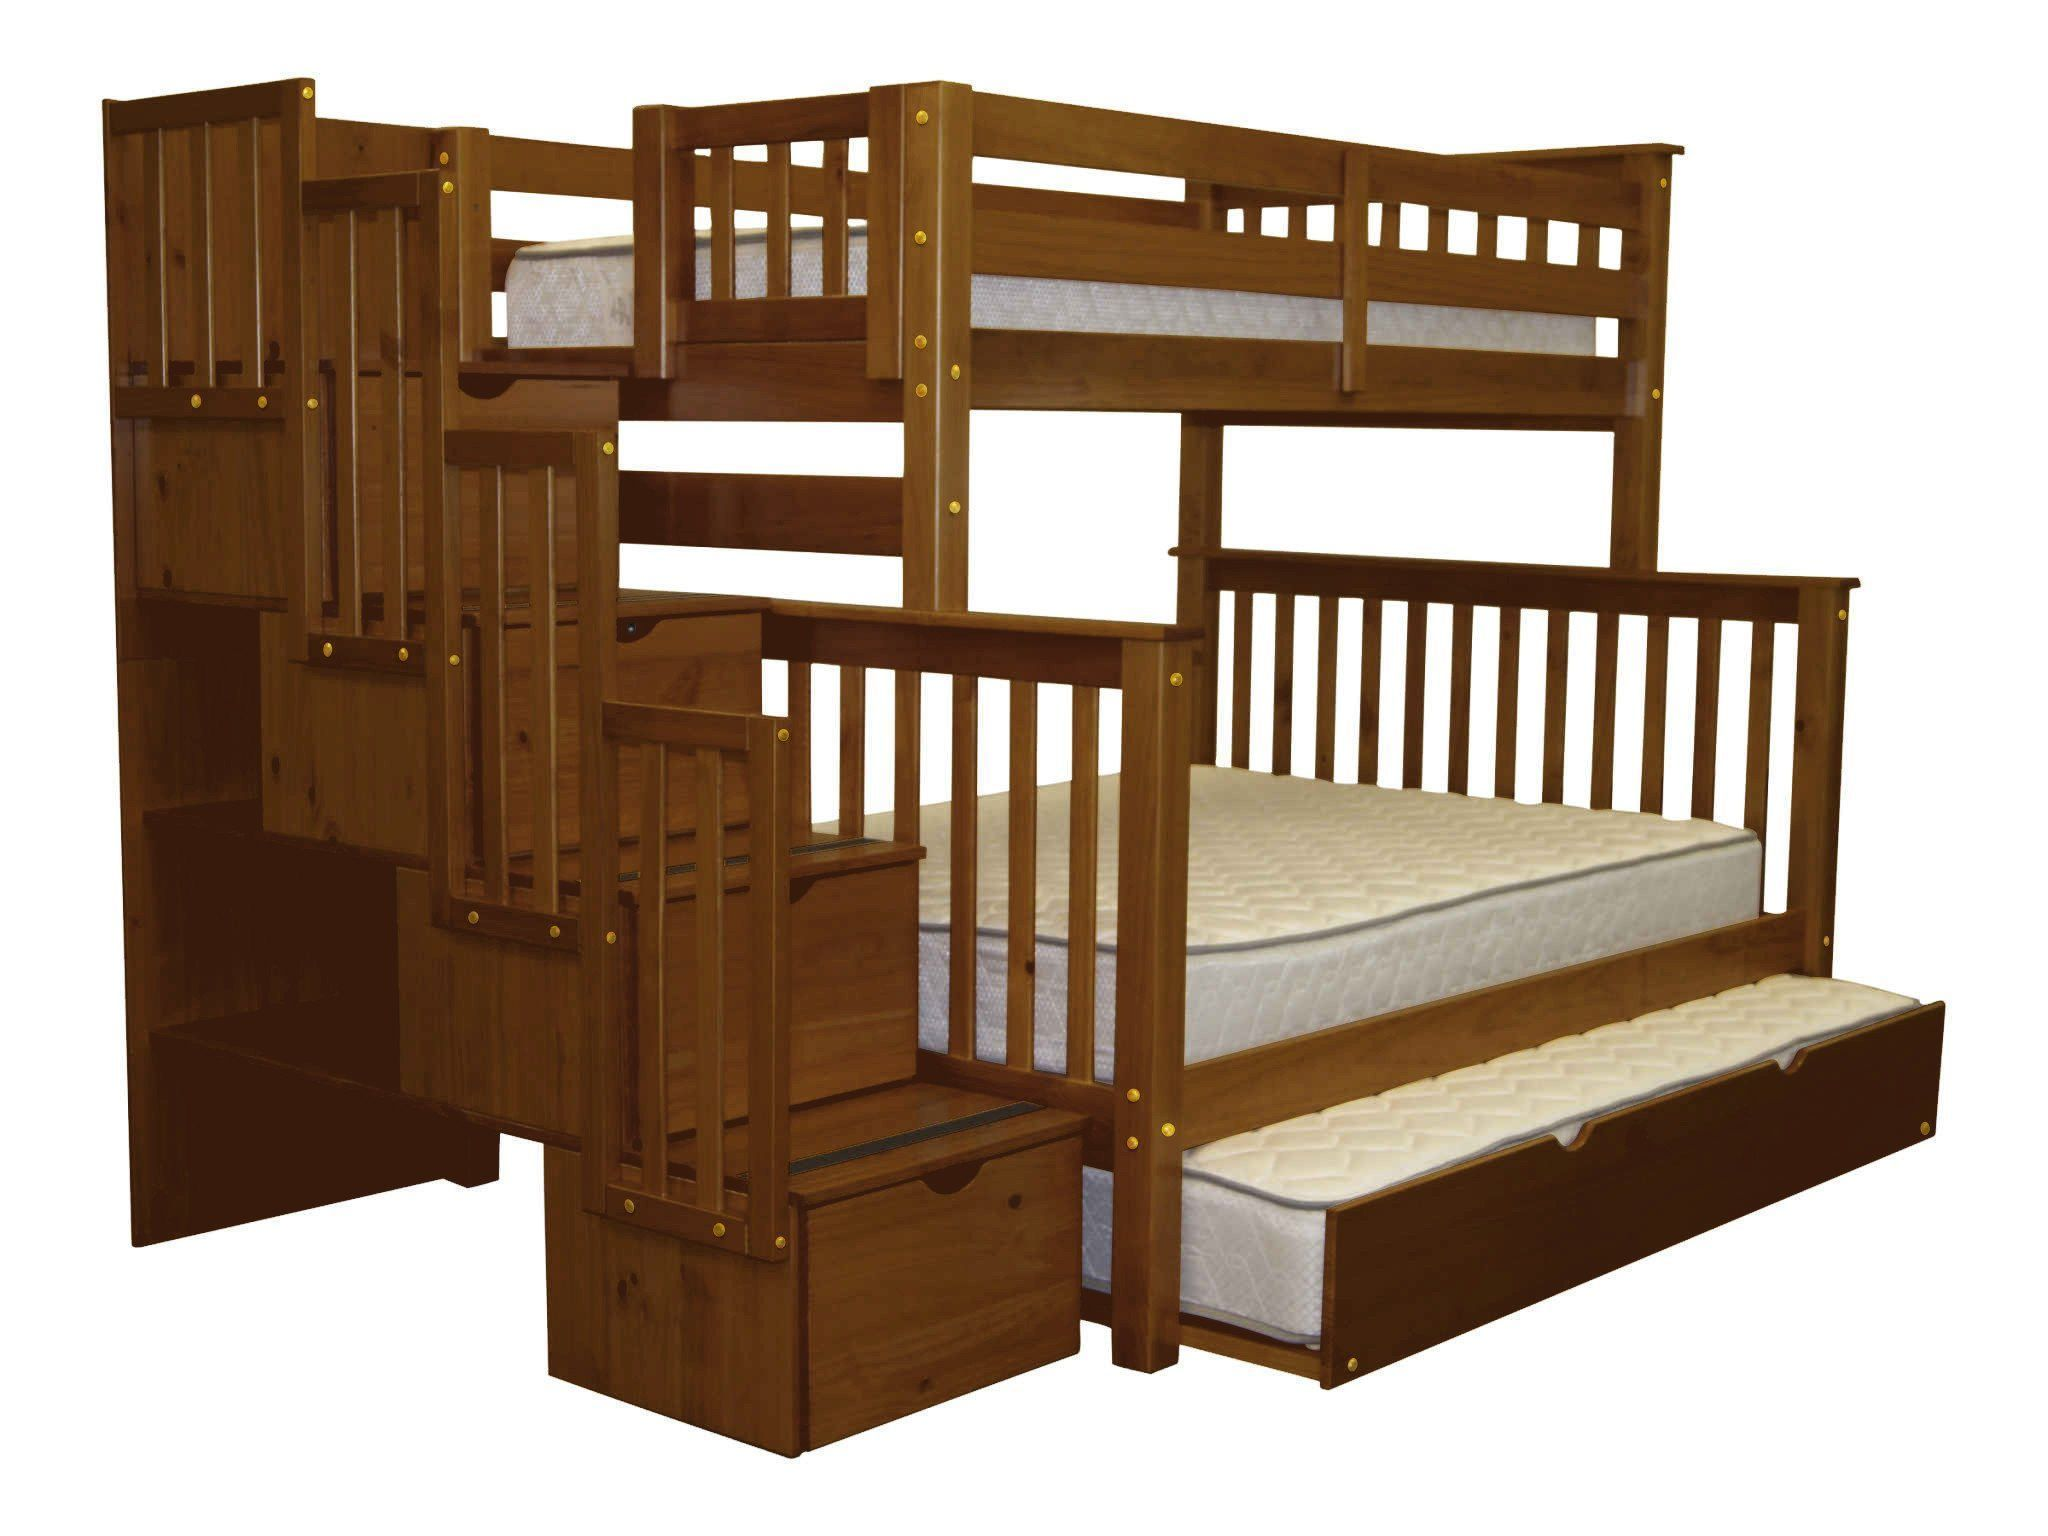 Merveilleux Bedz King Stairway Bunk Beds Twin Over Full With 4 Drawers In The Steps And  A